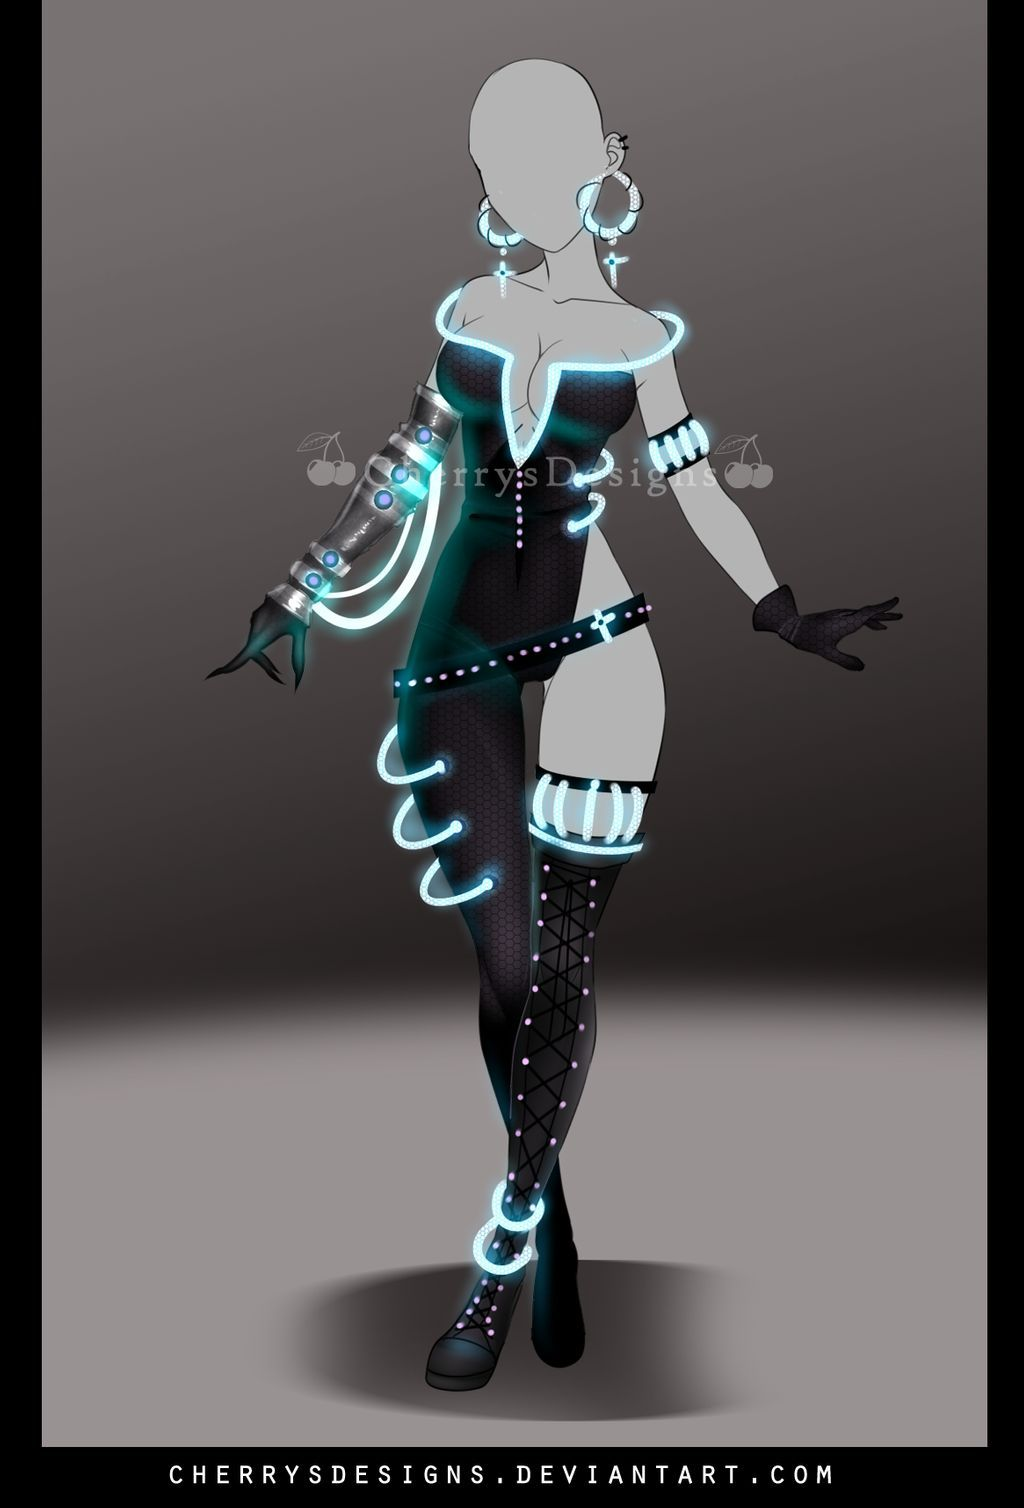 Art image by alexis c in 2020 anime outfits character